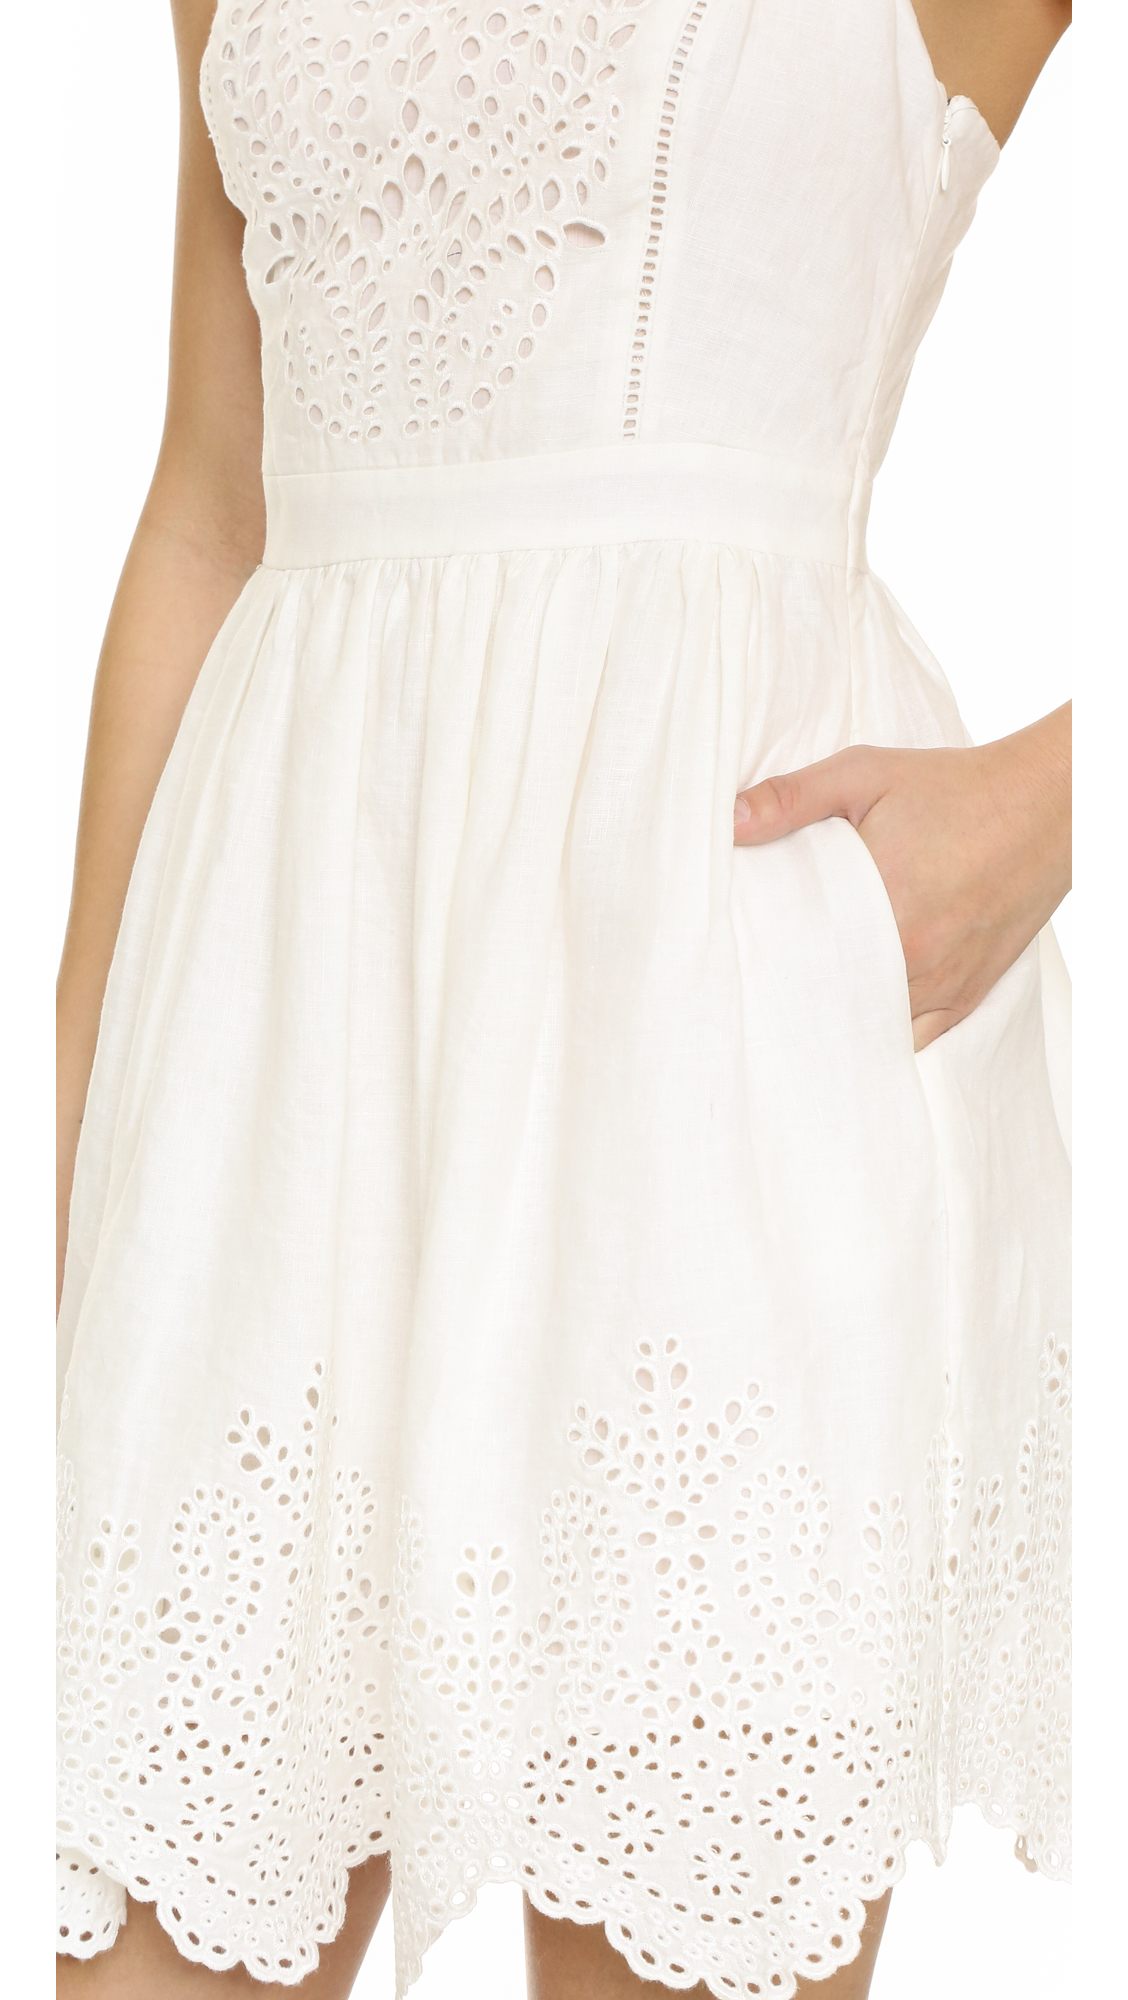 Joie Ornata Embroidered Eyelet Dress In White Lyst